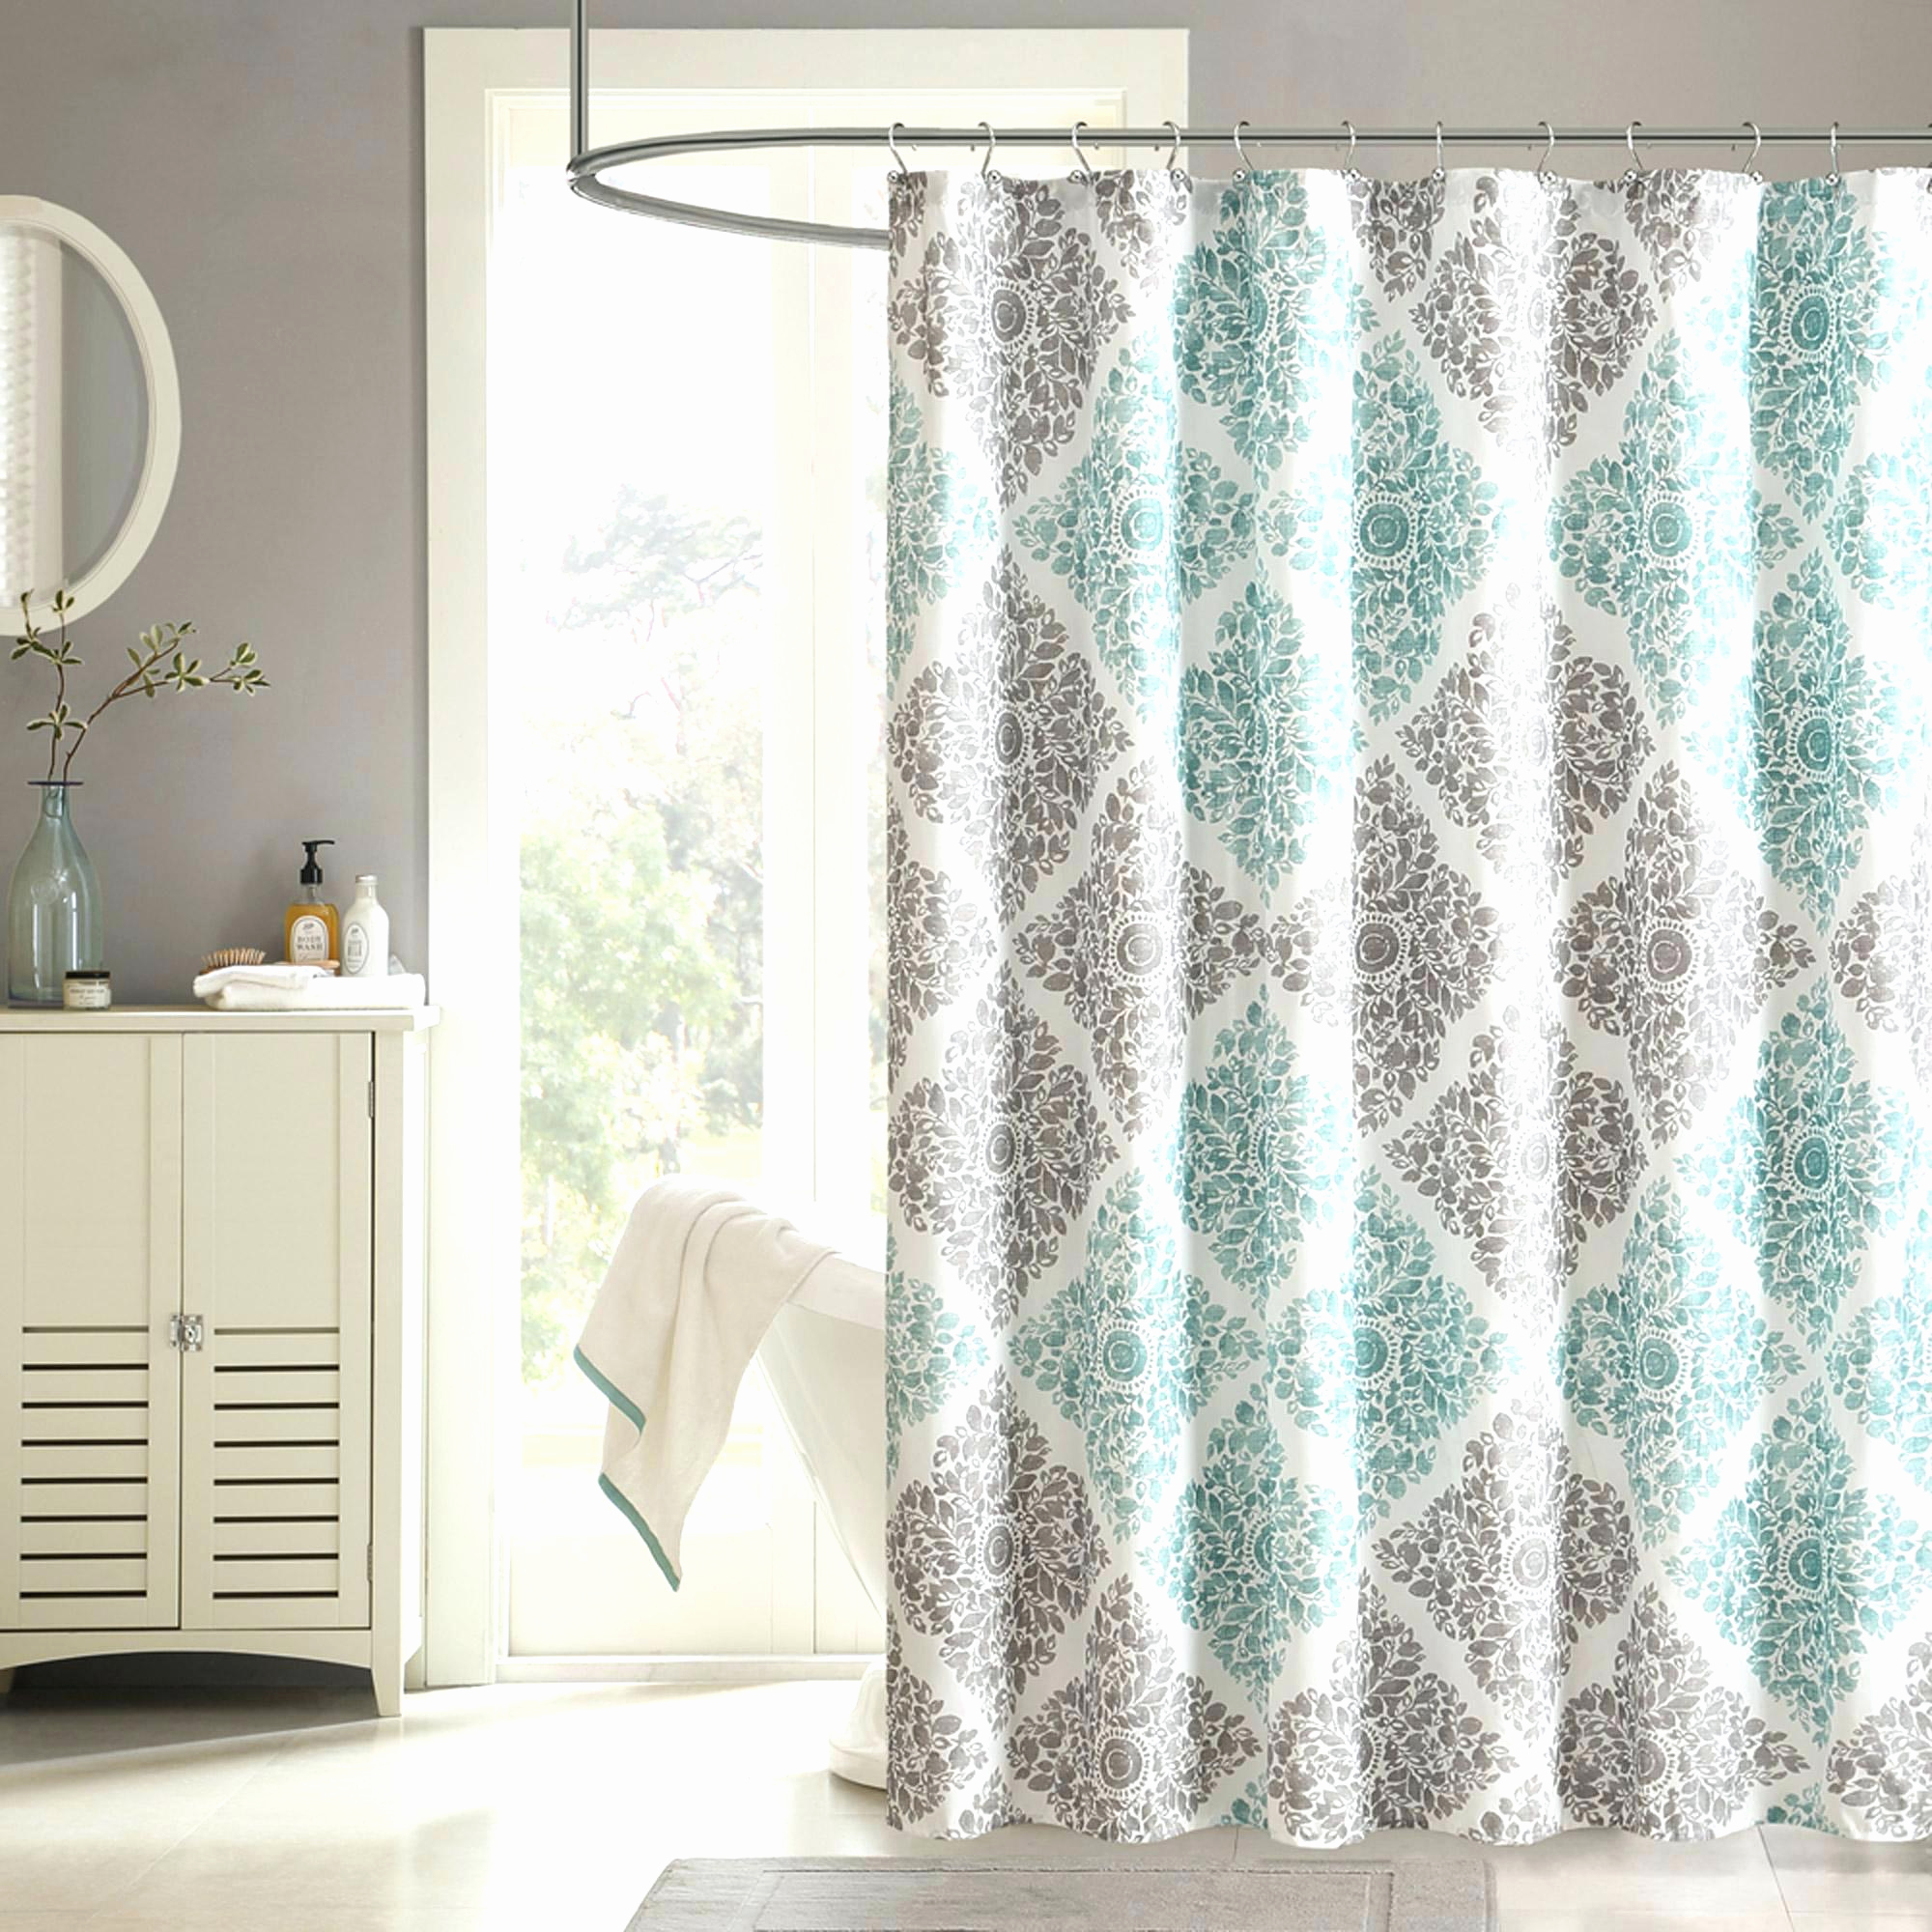 24 New Dollar Tree Shower Curtain Home Furniture Ideas Home throughout proportions 2000 X 2000